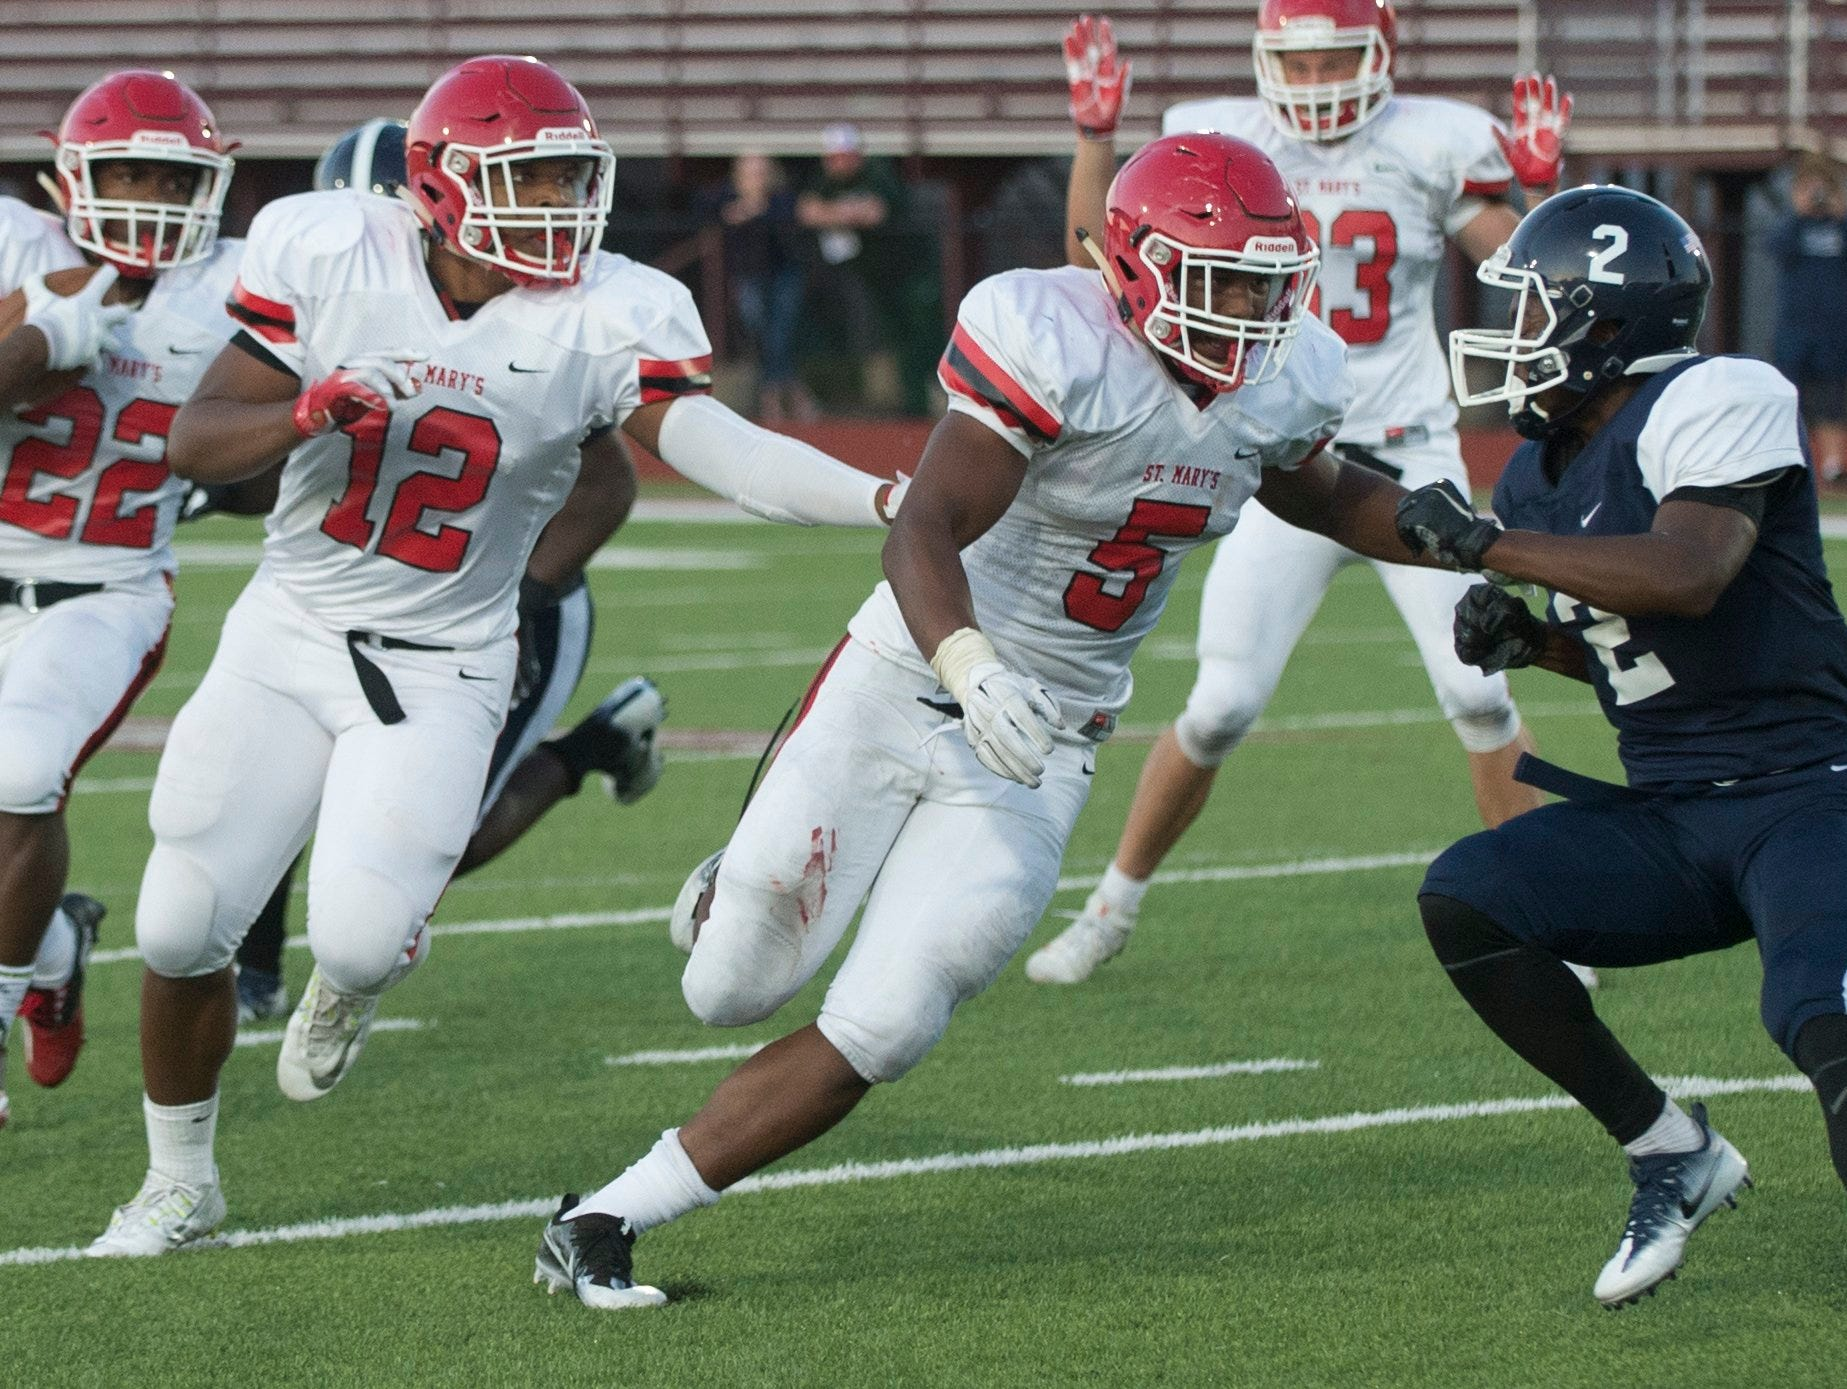 Orchard Lake St. Mary's linebacker Josh Ross, 5, crashes into Detroit Loyola defensive back Cartiae Mitchell during St. Mary's 35-14 win Friday at Hazel Park.